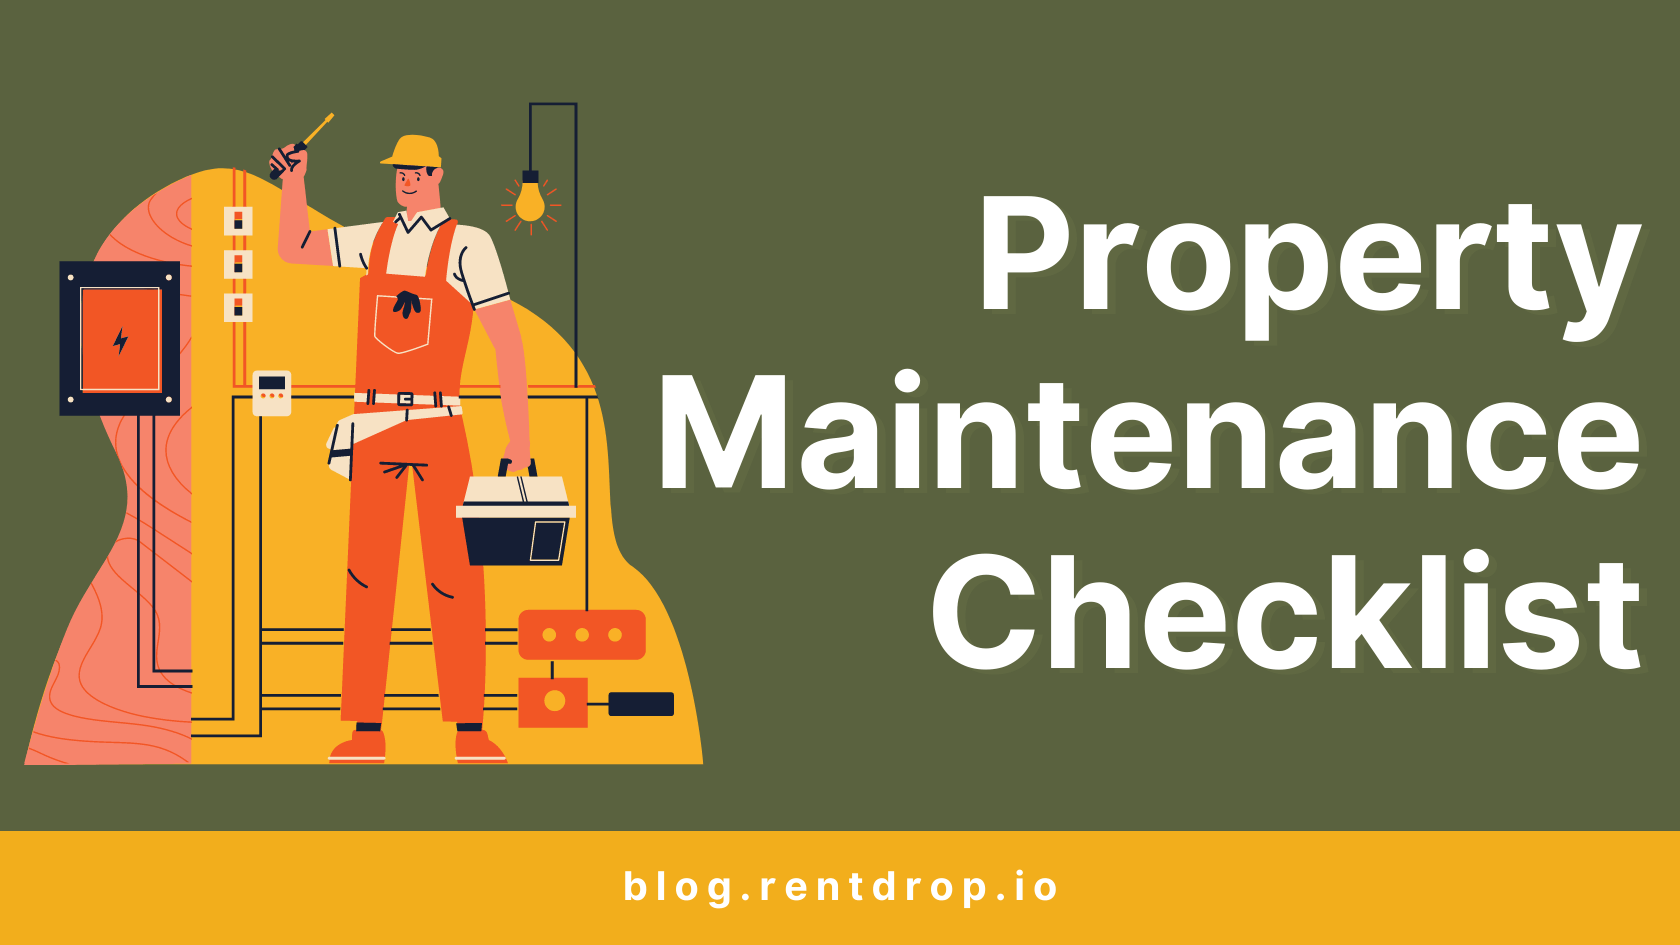 image of Property Maintenance Checklist: 12 Items Every Landlord Needs to Know